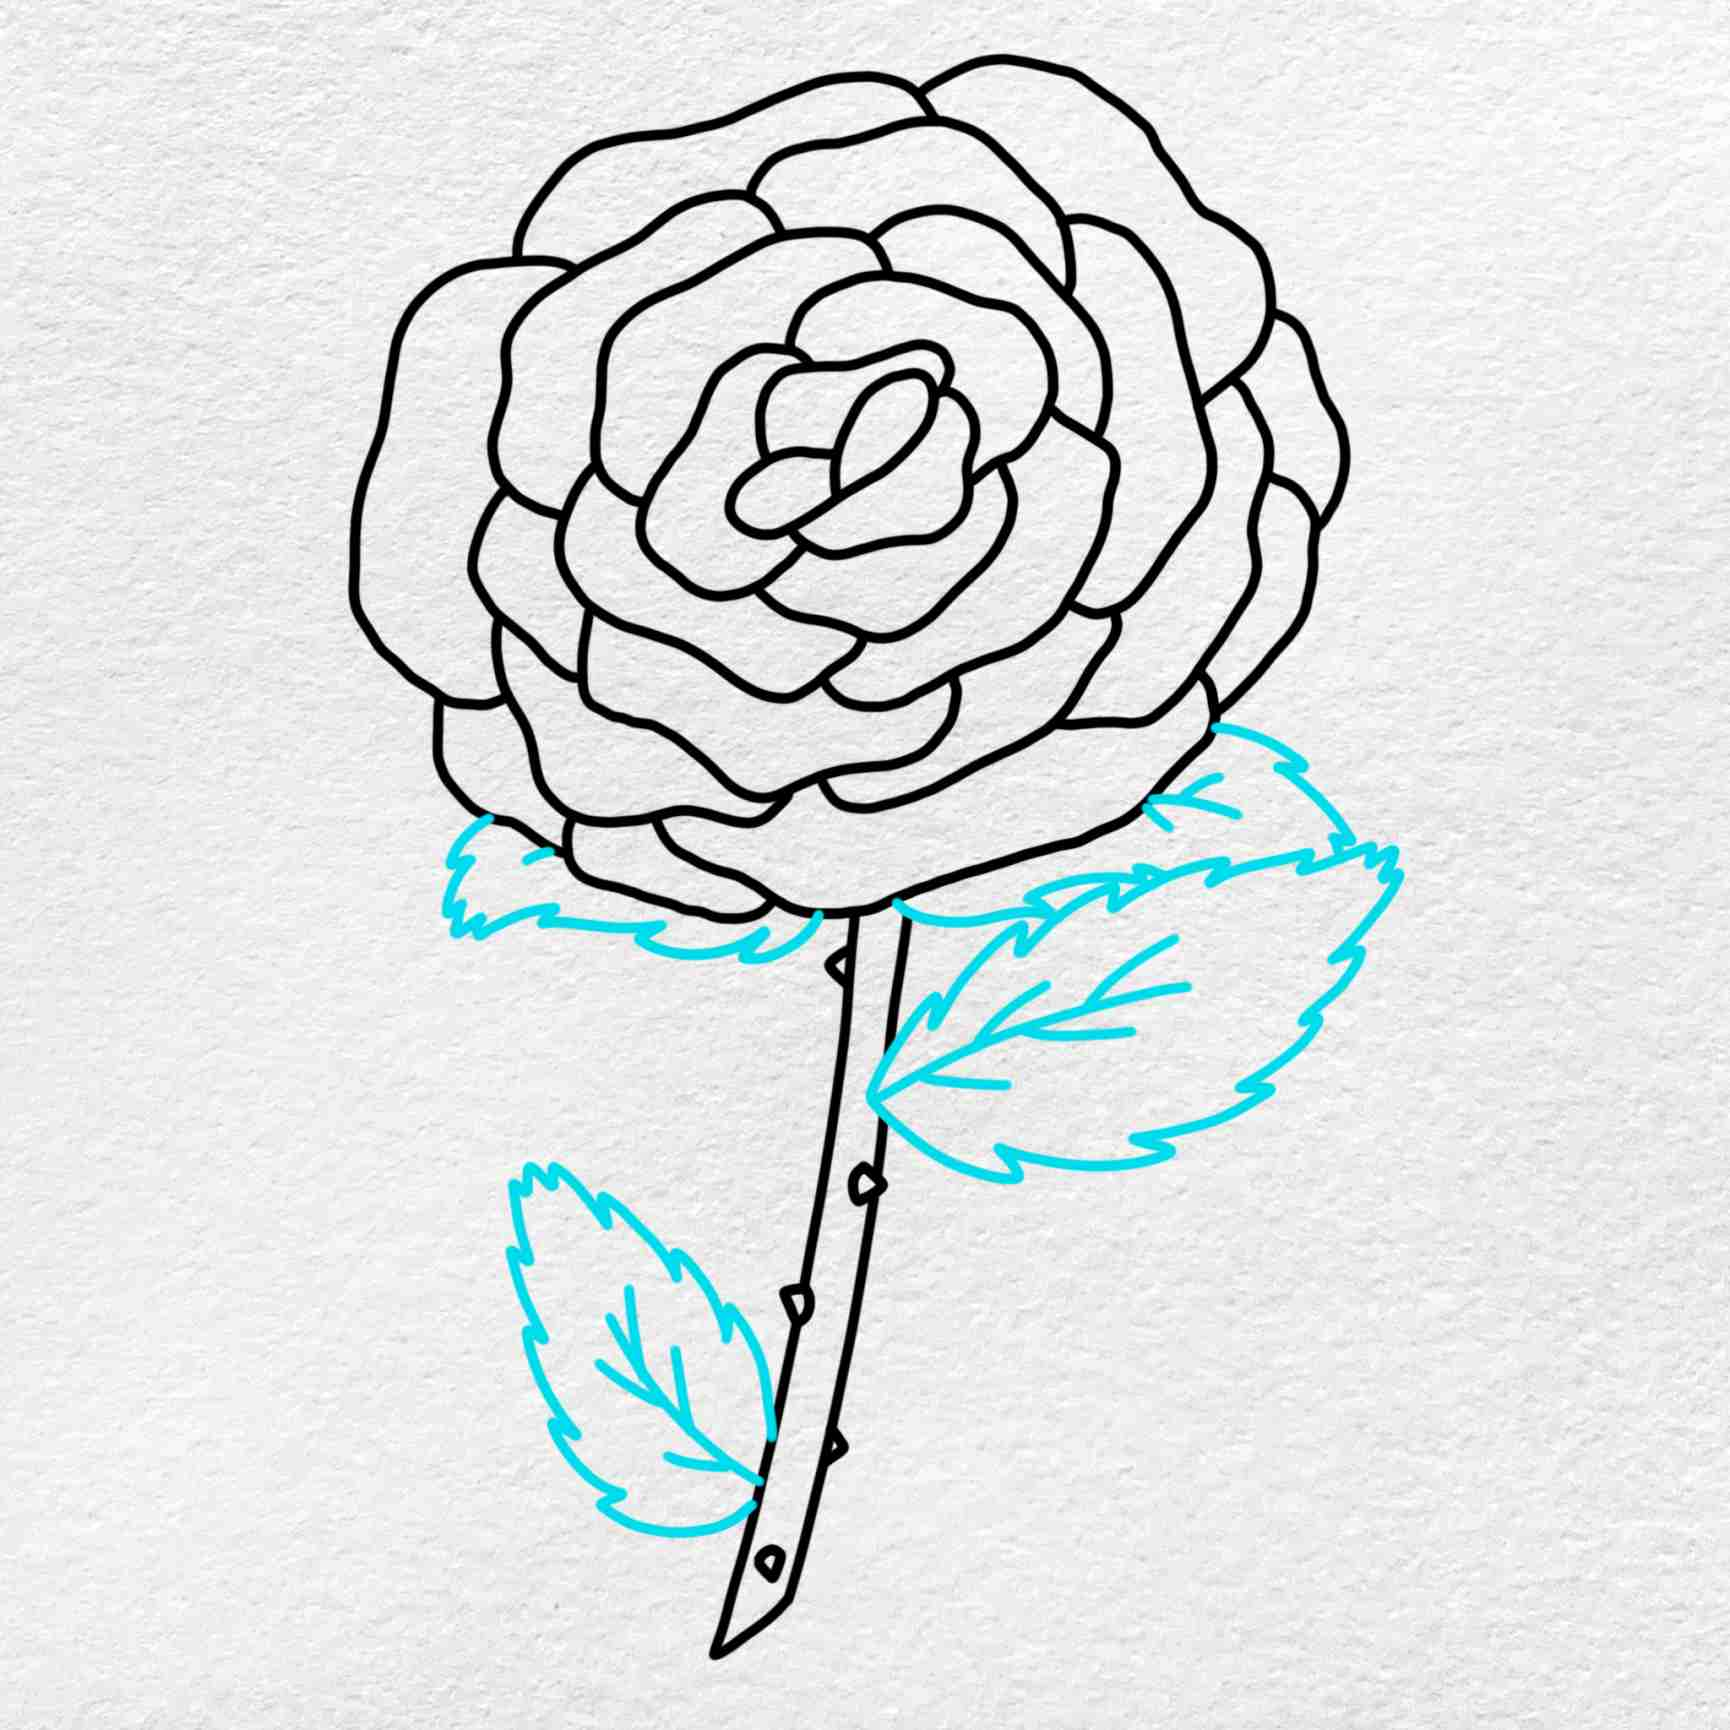 How To Draw A Rose Step By Step: Step 5